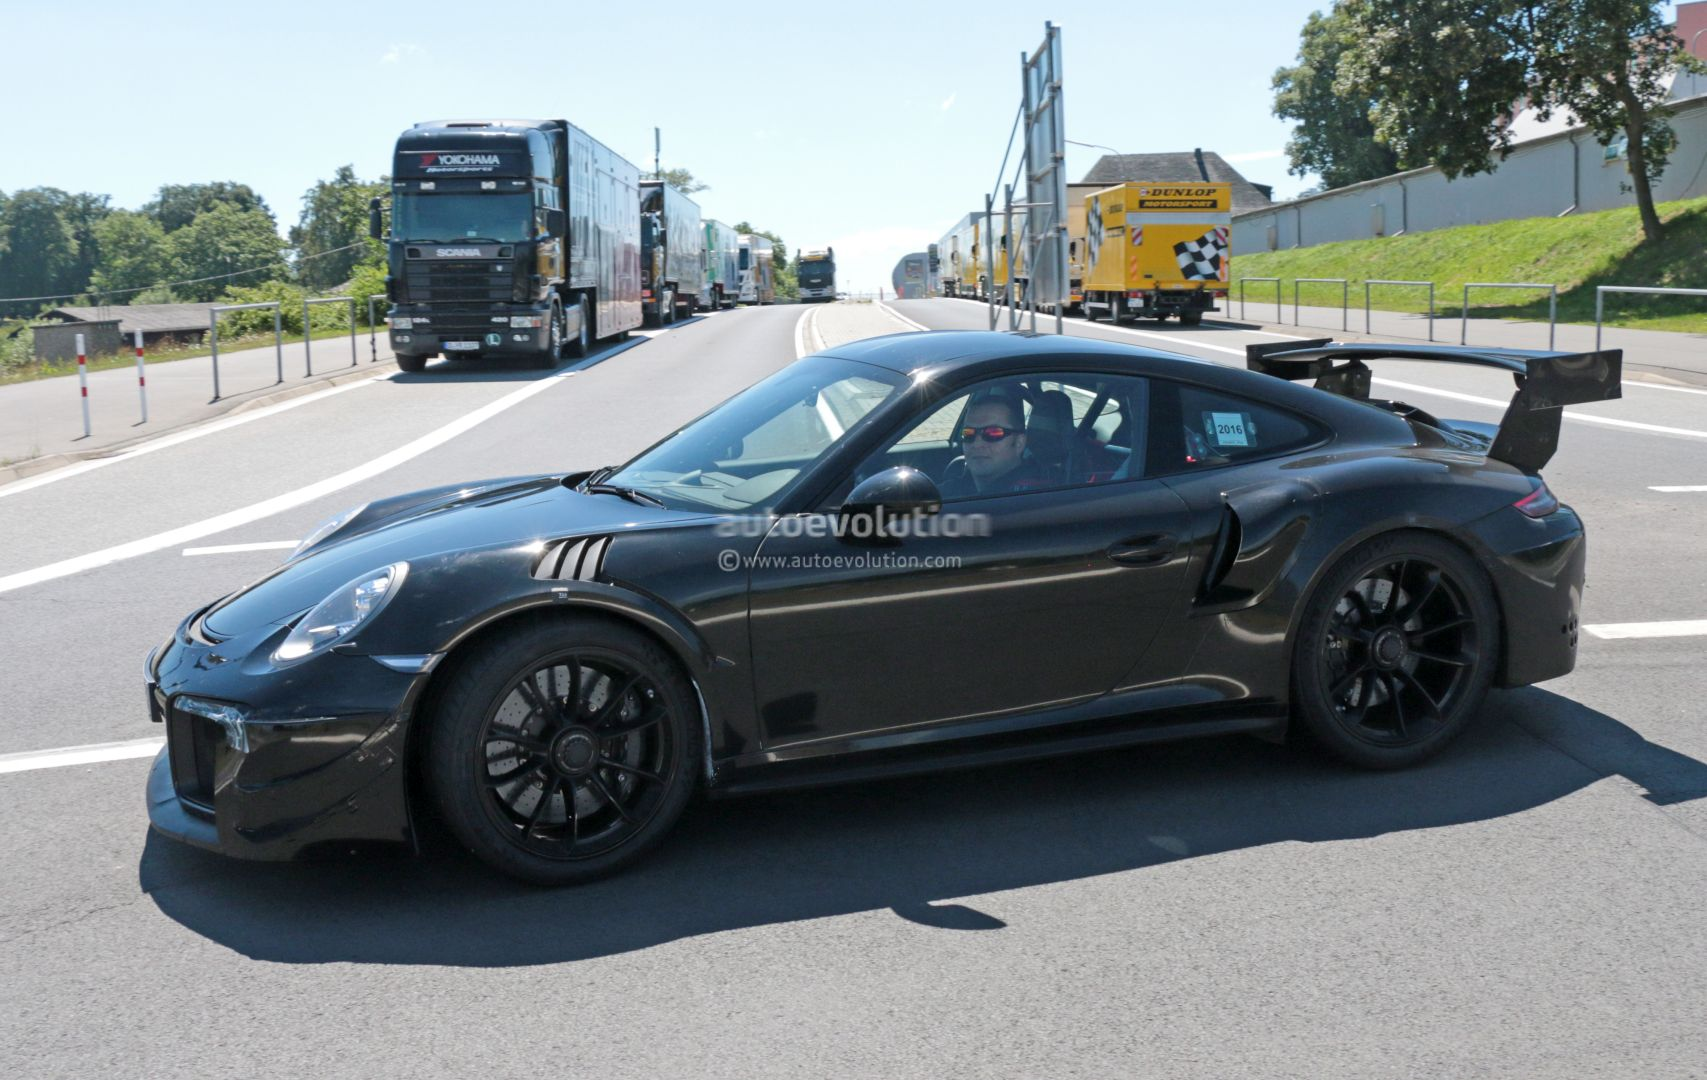 New Porsche 911 Gt2 Gt2 Rs Spied With Racecar Aero Expect Monstrous Ring Time Autoevolution